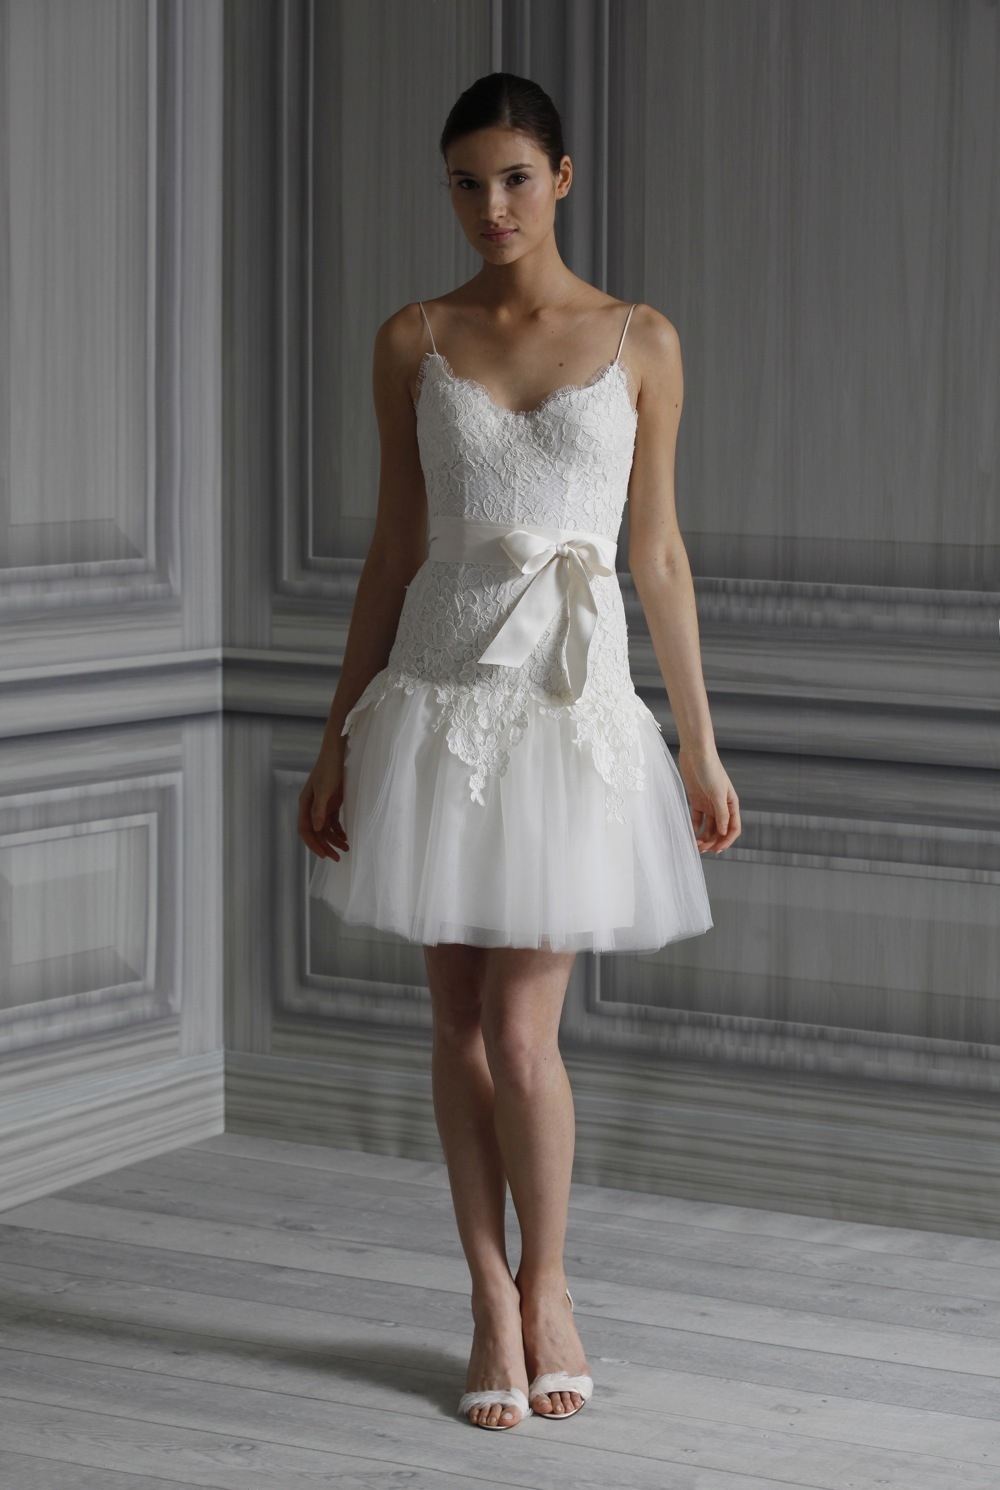 Wedding-dress-monique-lhuillier-bridal-gowns-spring-2012-ballet.full